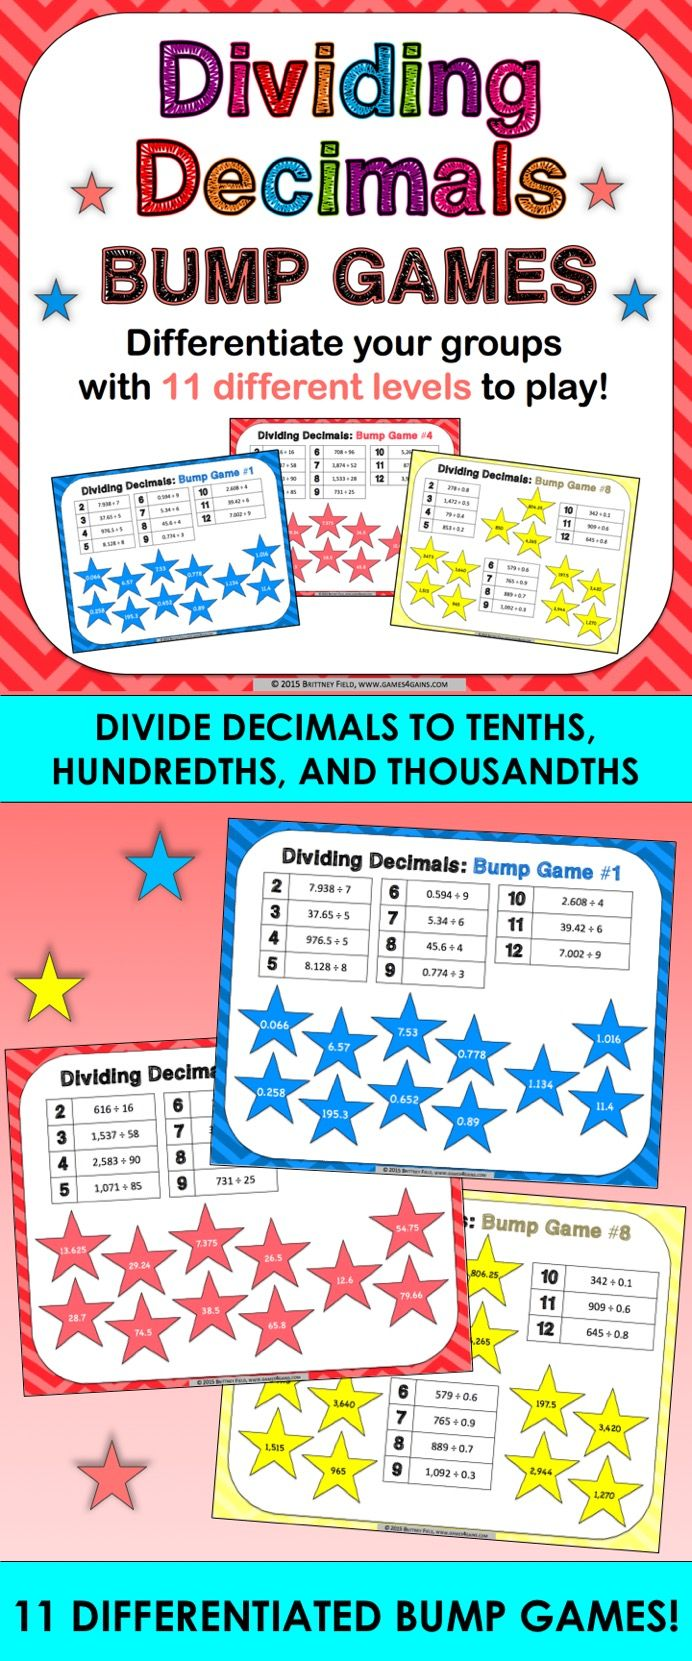 Dividing Decimals Bump Games contains 11 different dividing decimals games to help students practice dividing decimals to tenths, hundredths, and thousandths. As students work through the games, each one ramps up in difficulty. This means that you can have all of your students working at their appropriate level when using this dividing decimals set!